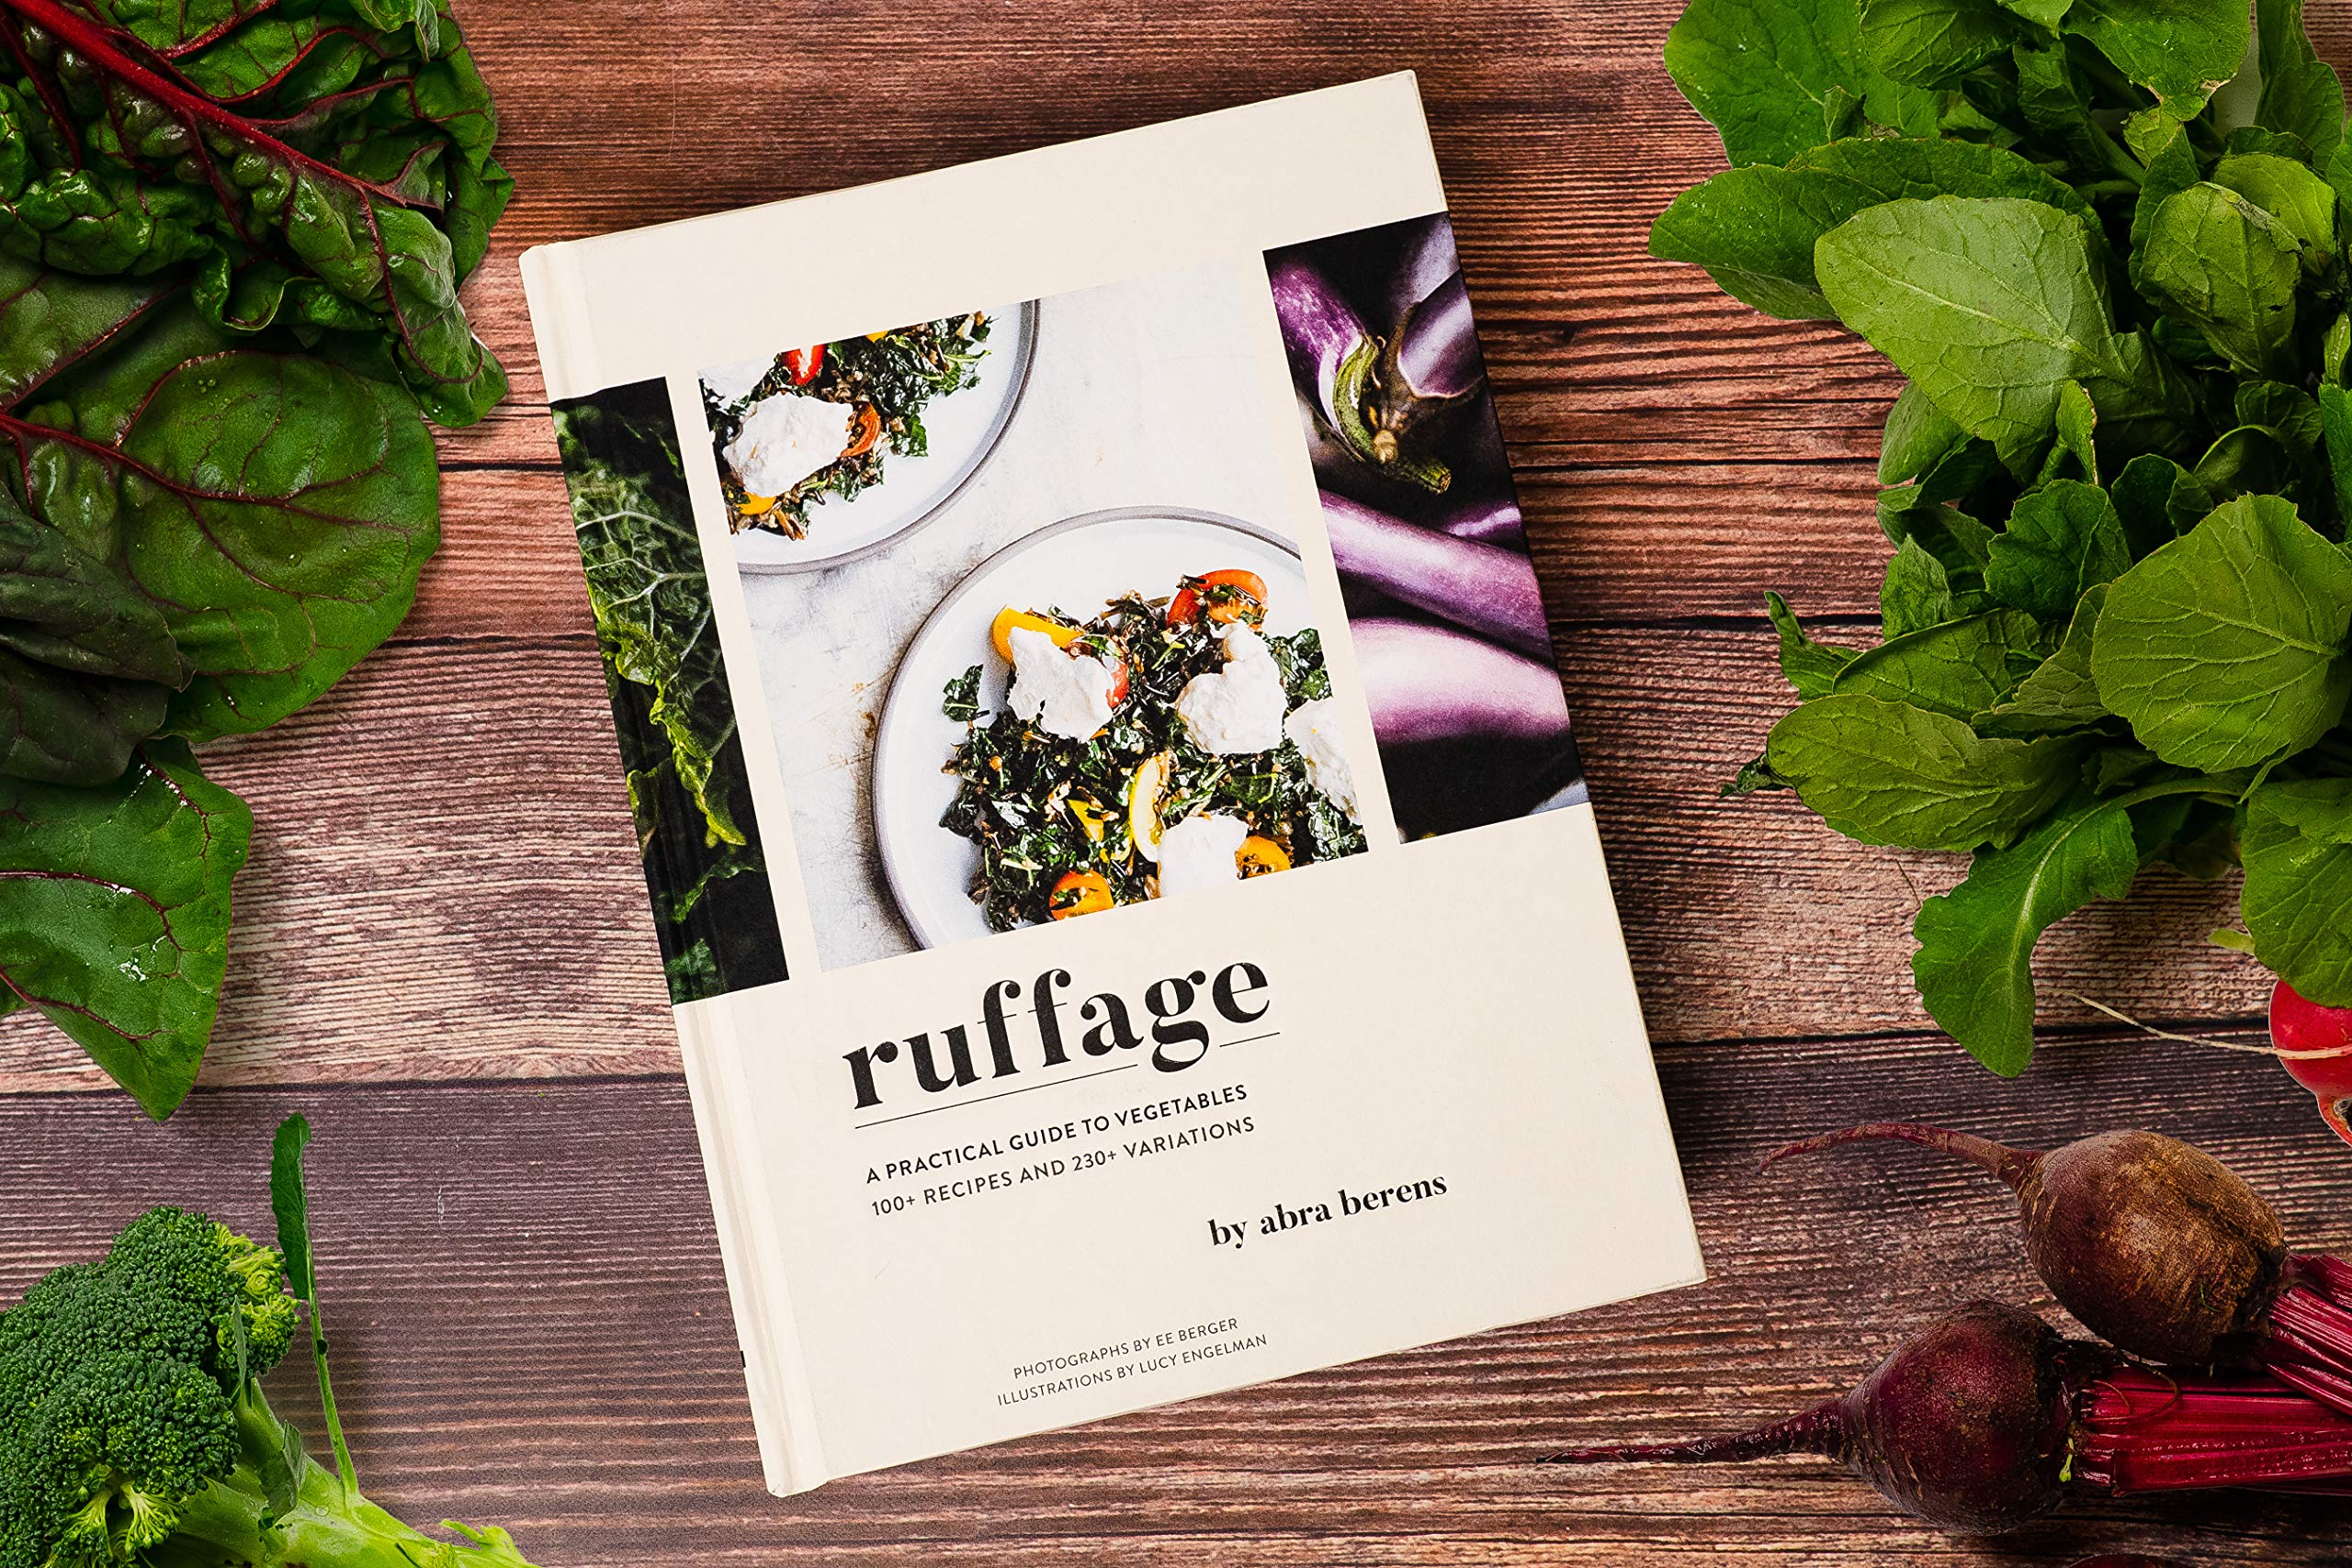 16+ Ruffage A Practical Guide to Vegetables 8+ Recipes and 8+ ... Image